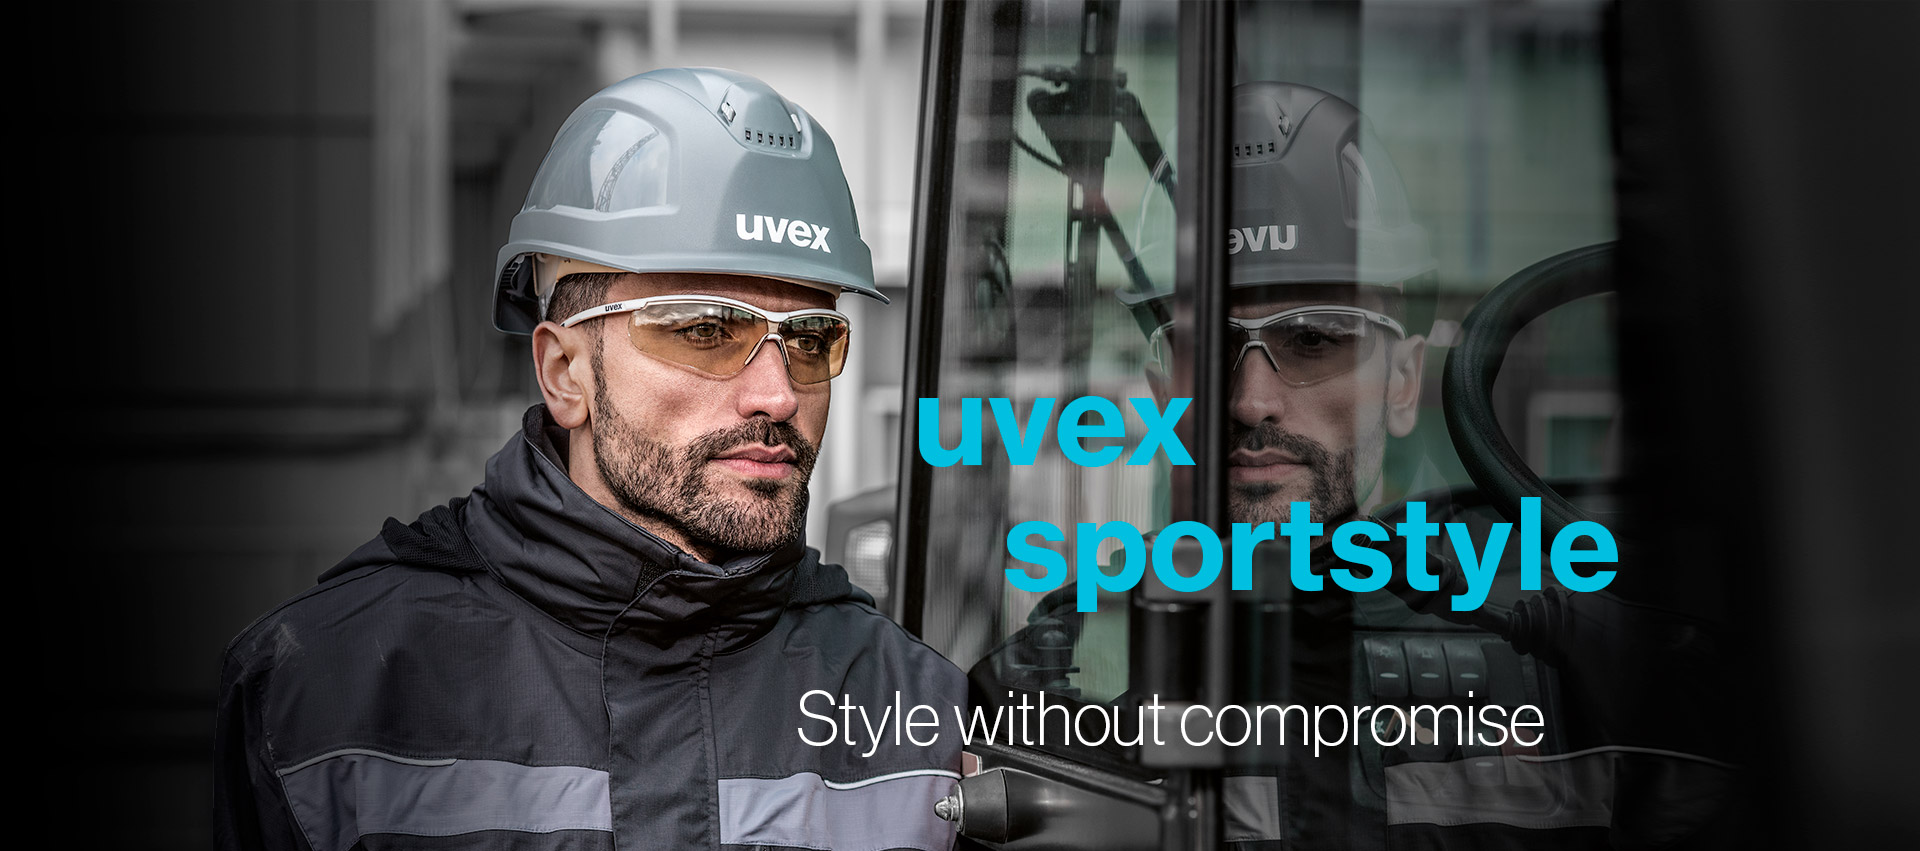 uvex sportstyle - style without compromise